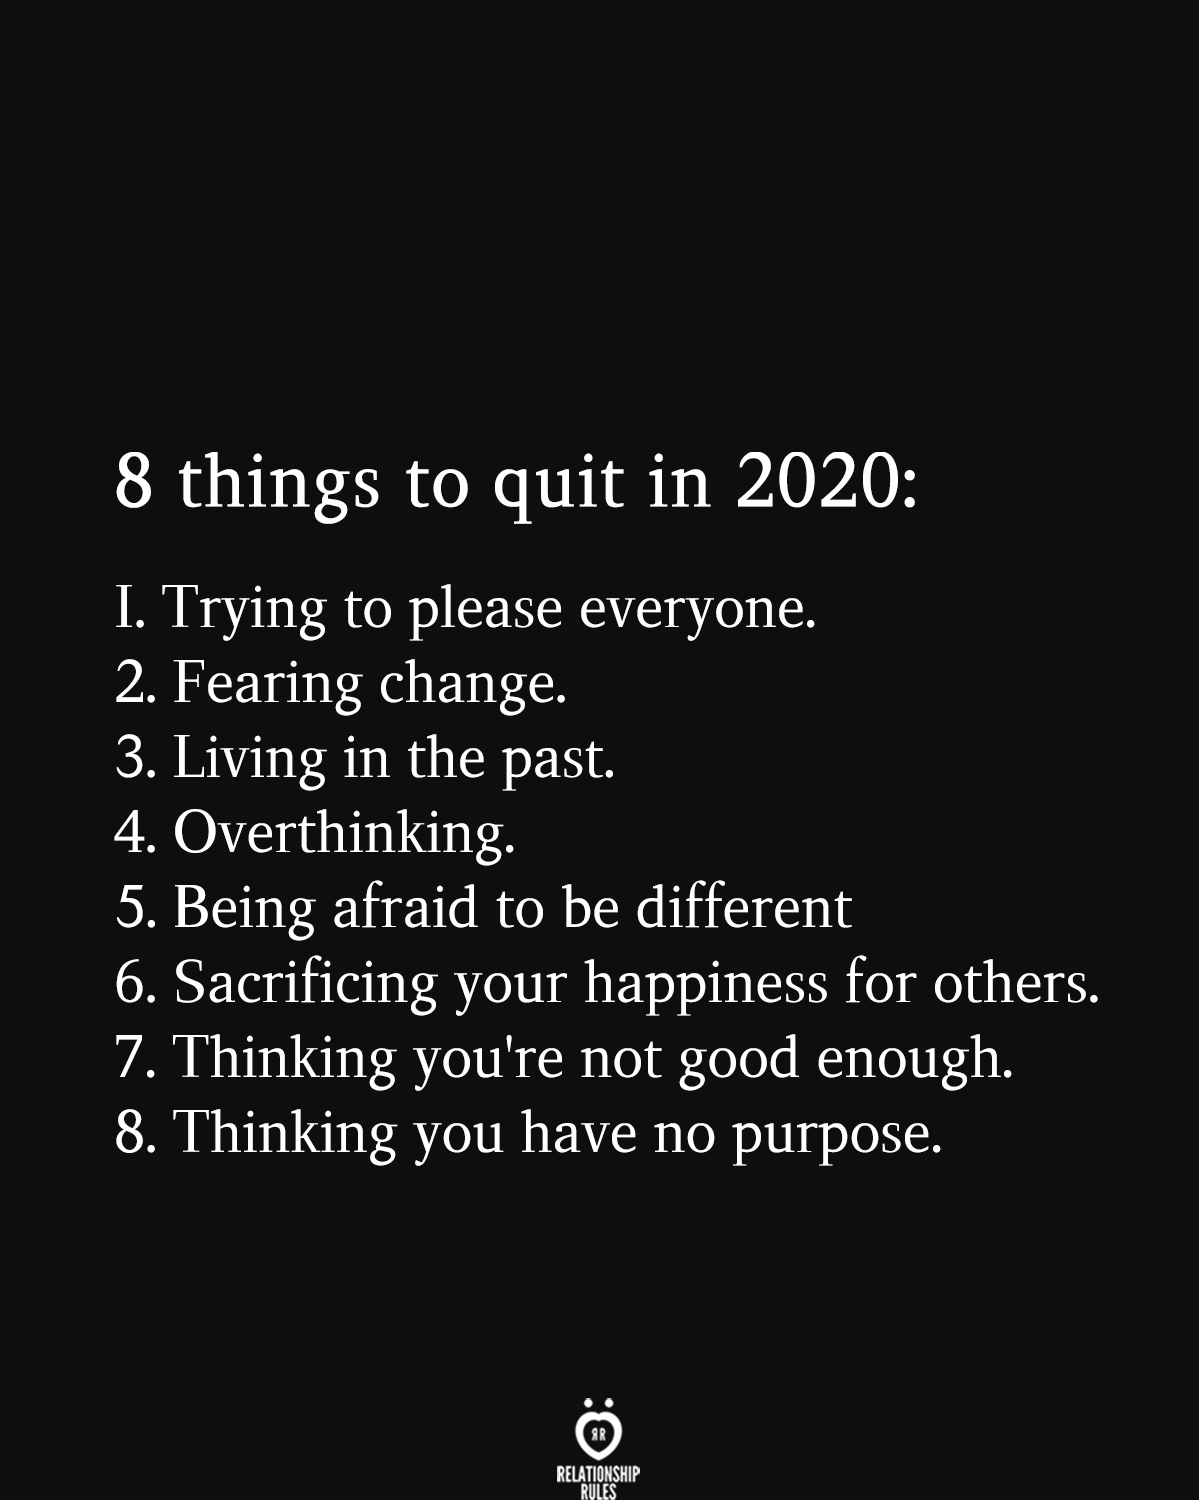 8 things to quit in 2020: